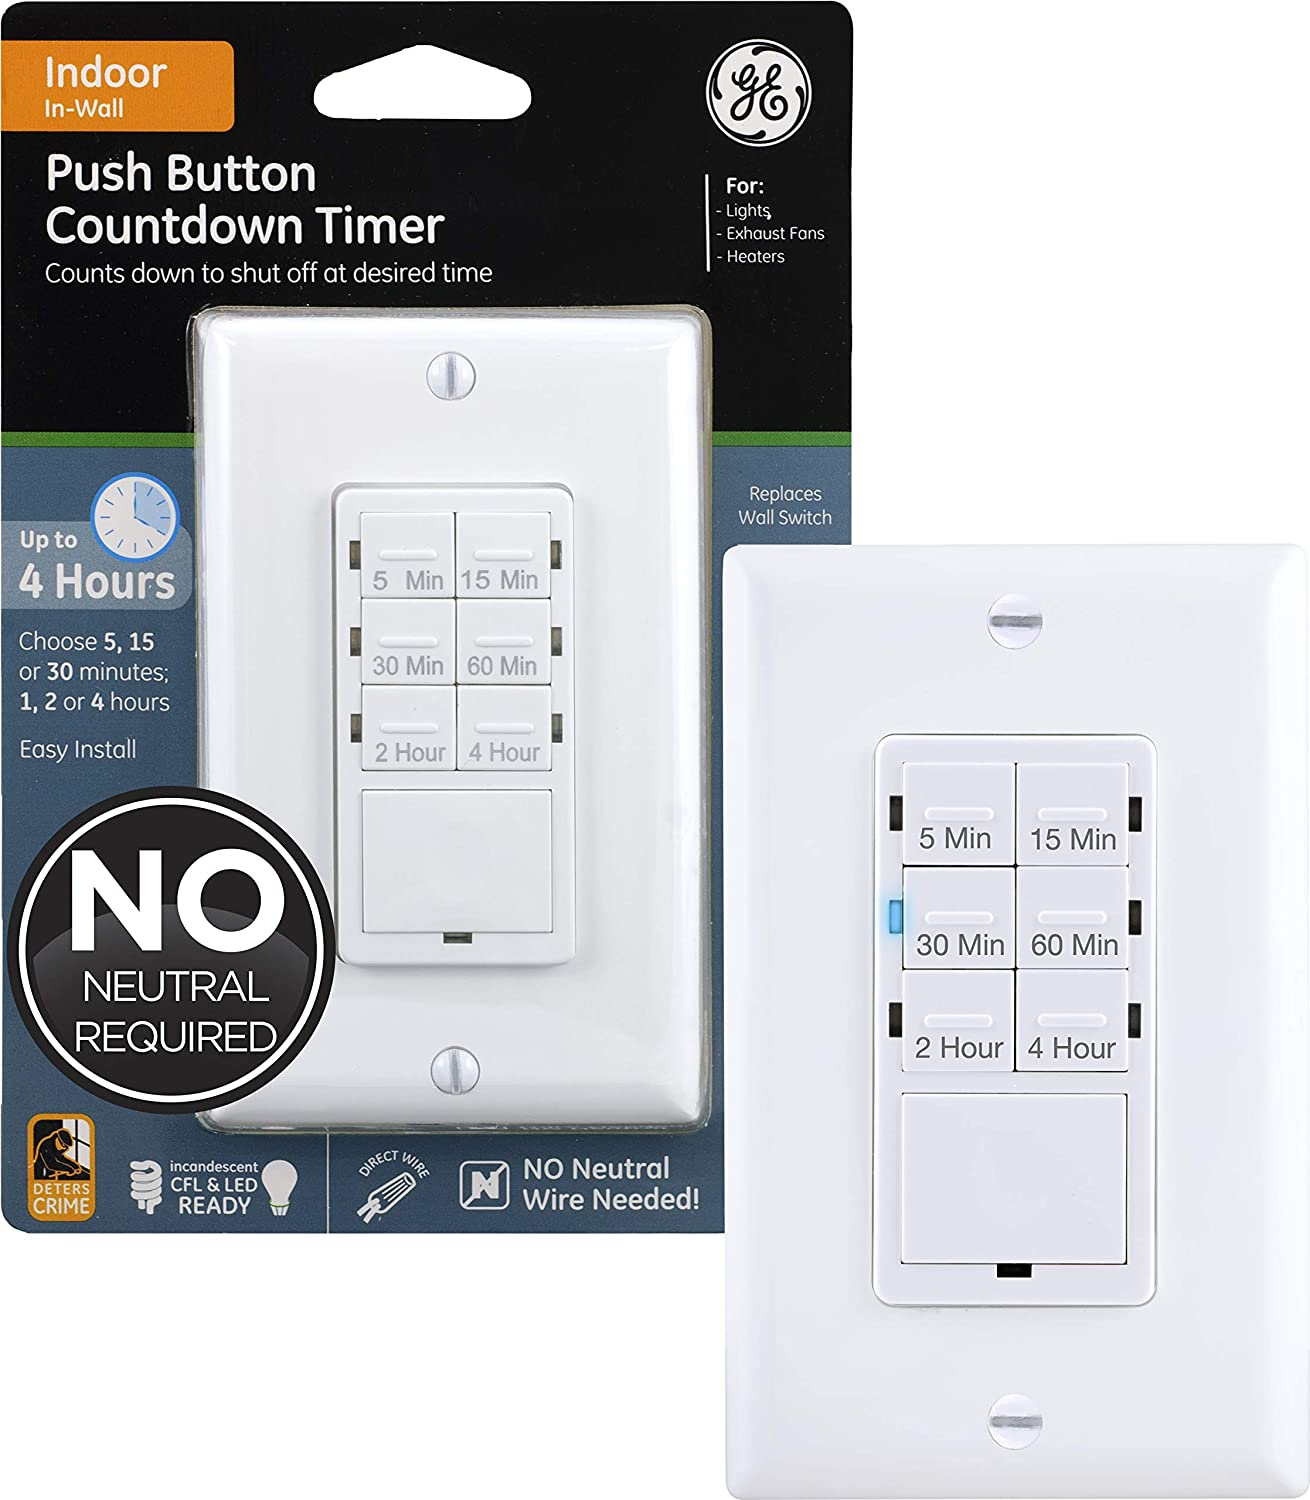 Ge Push Button Countdown Timer Switch 5 15 30 Minute 1 2 4 Hour On Off No Neutral Wire Needed Ideal For Lights Exhaust Fans Heaters Wall Plate Included 15318 White Timer Wall Switch Amazon Com